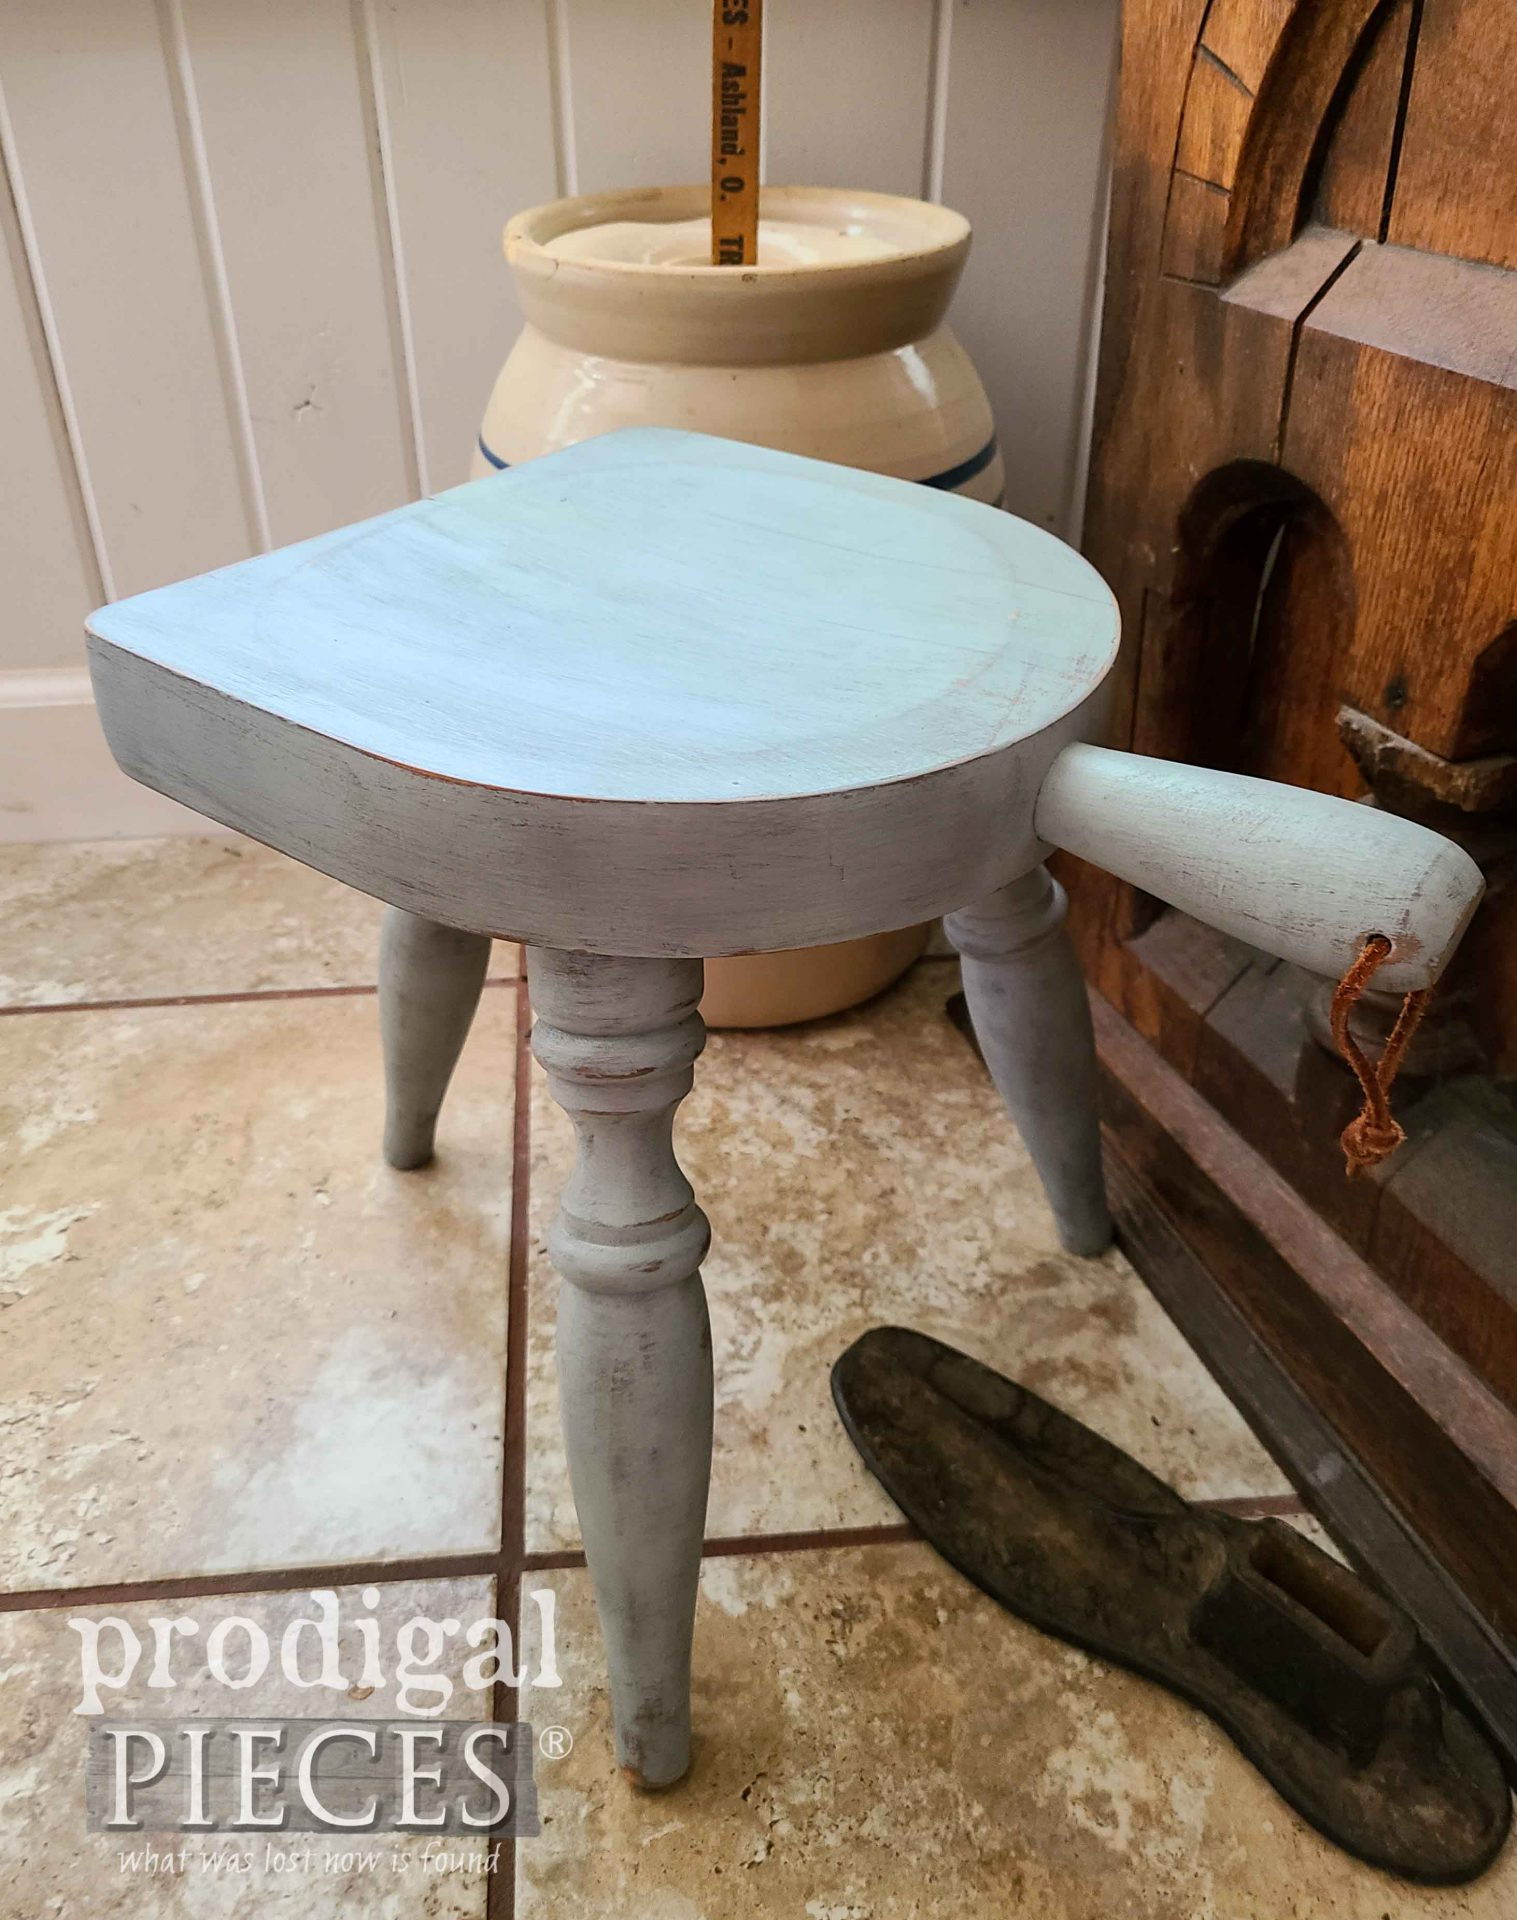 Farmhouse Milking Stool for Mini Thrift Store Makeovers by Prodigal Pieces | prodigalpieces.com #prodigalpieces #farmhouse #farm #dairy